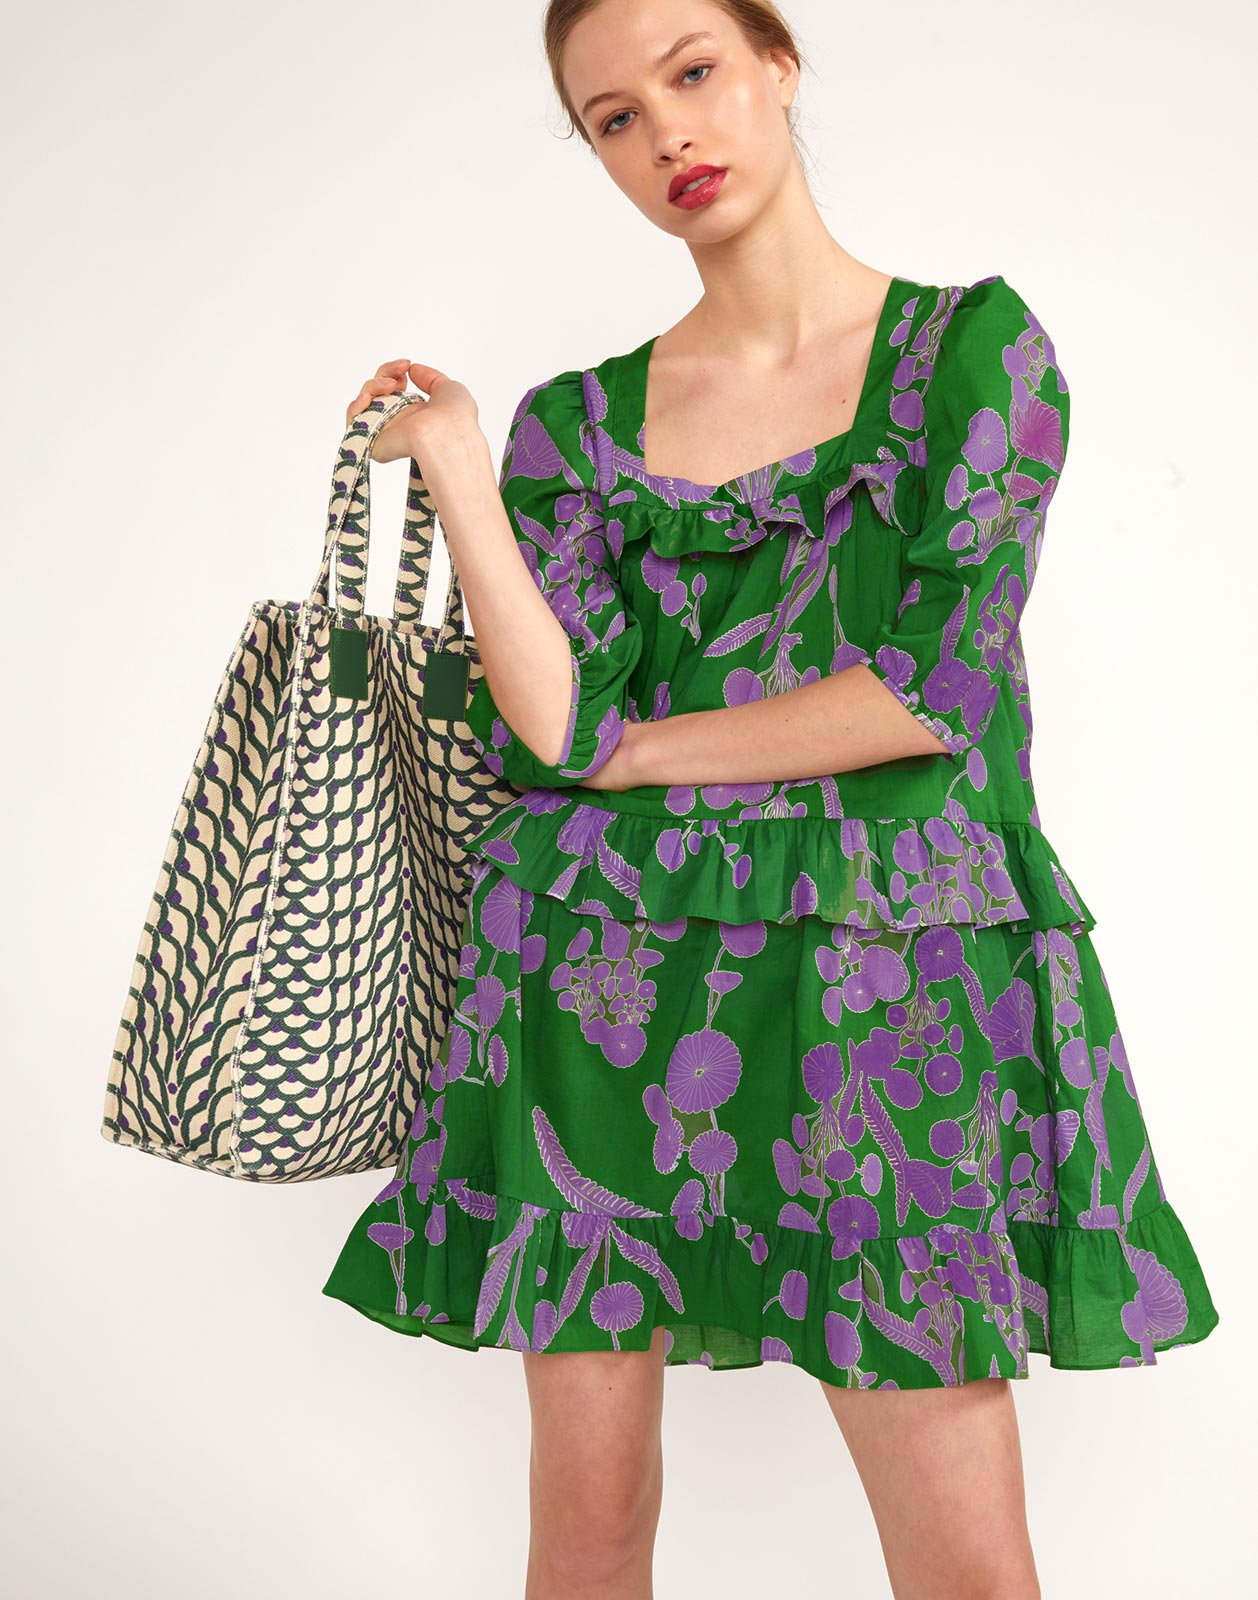 Printed green tote and Kuaii Ruffle Swing Dress